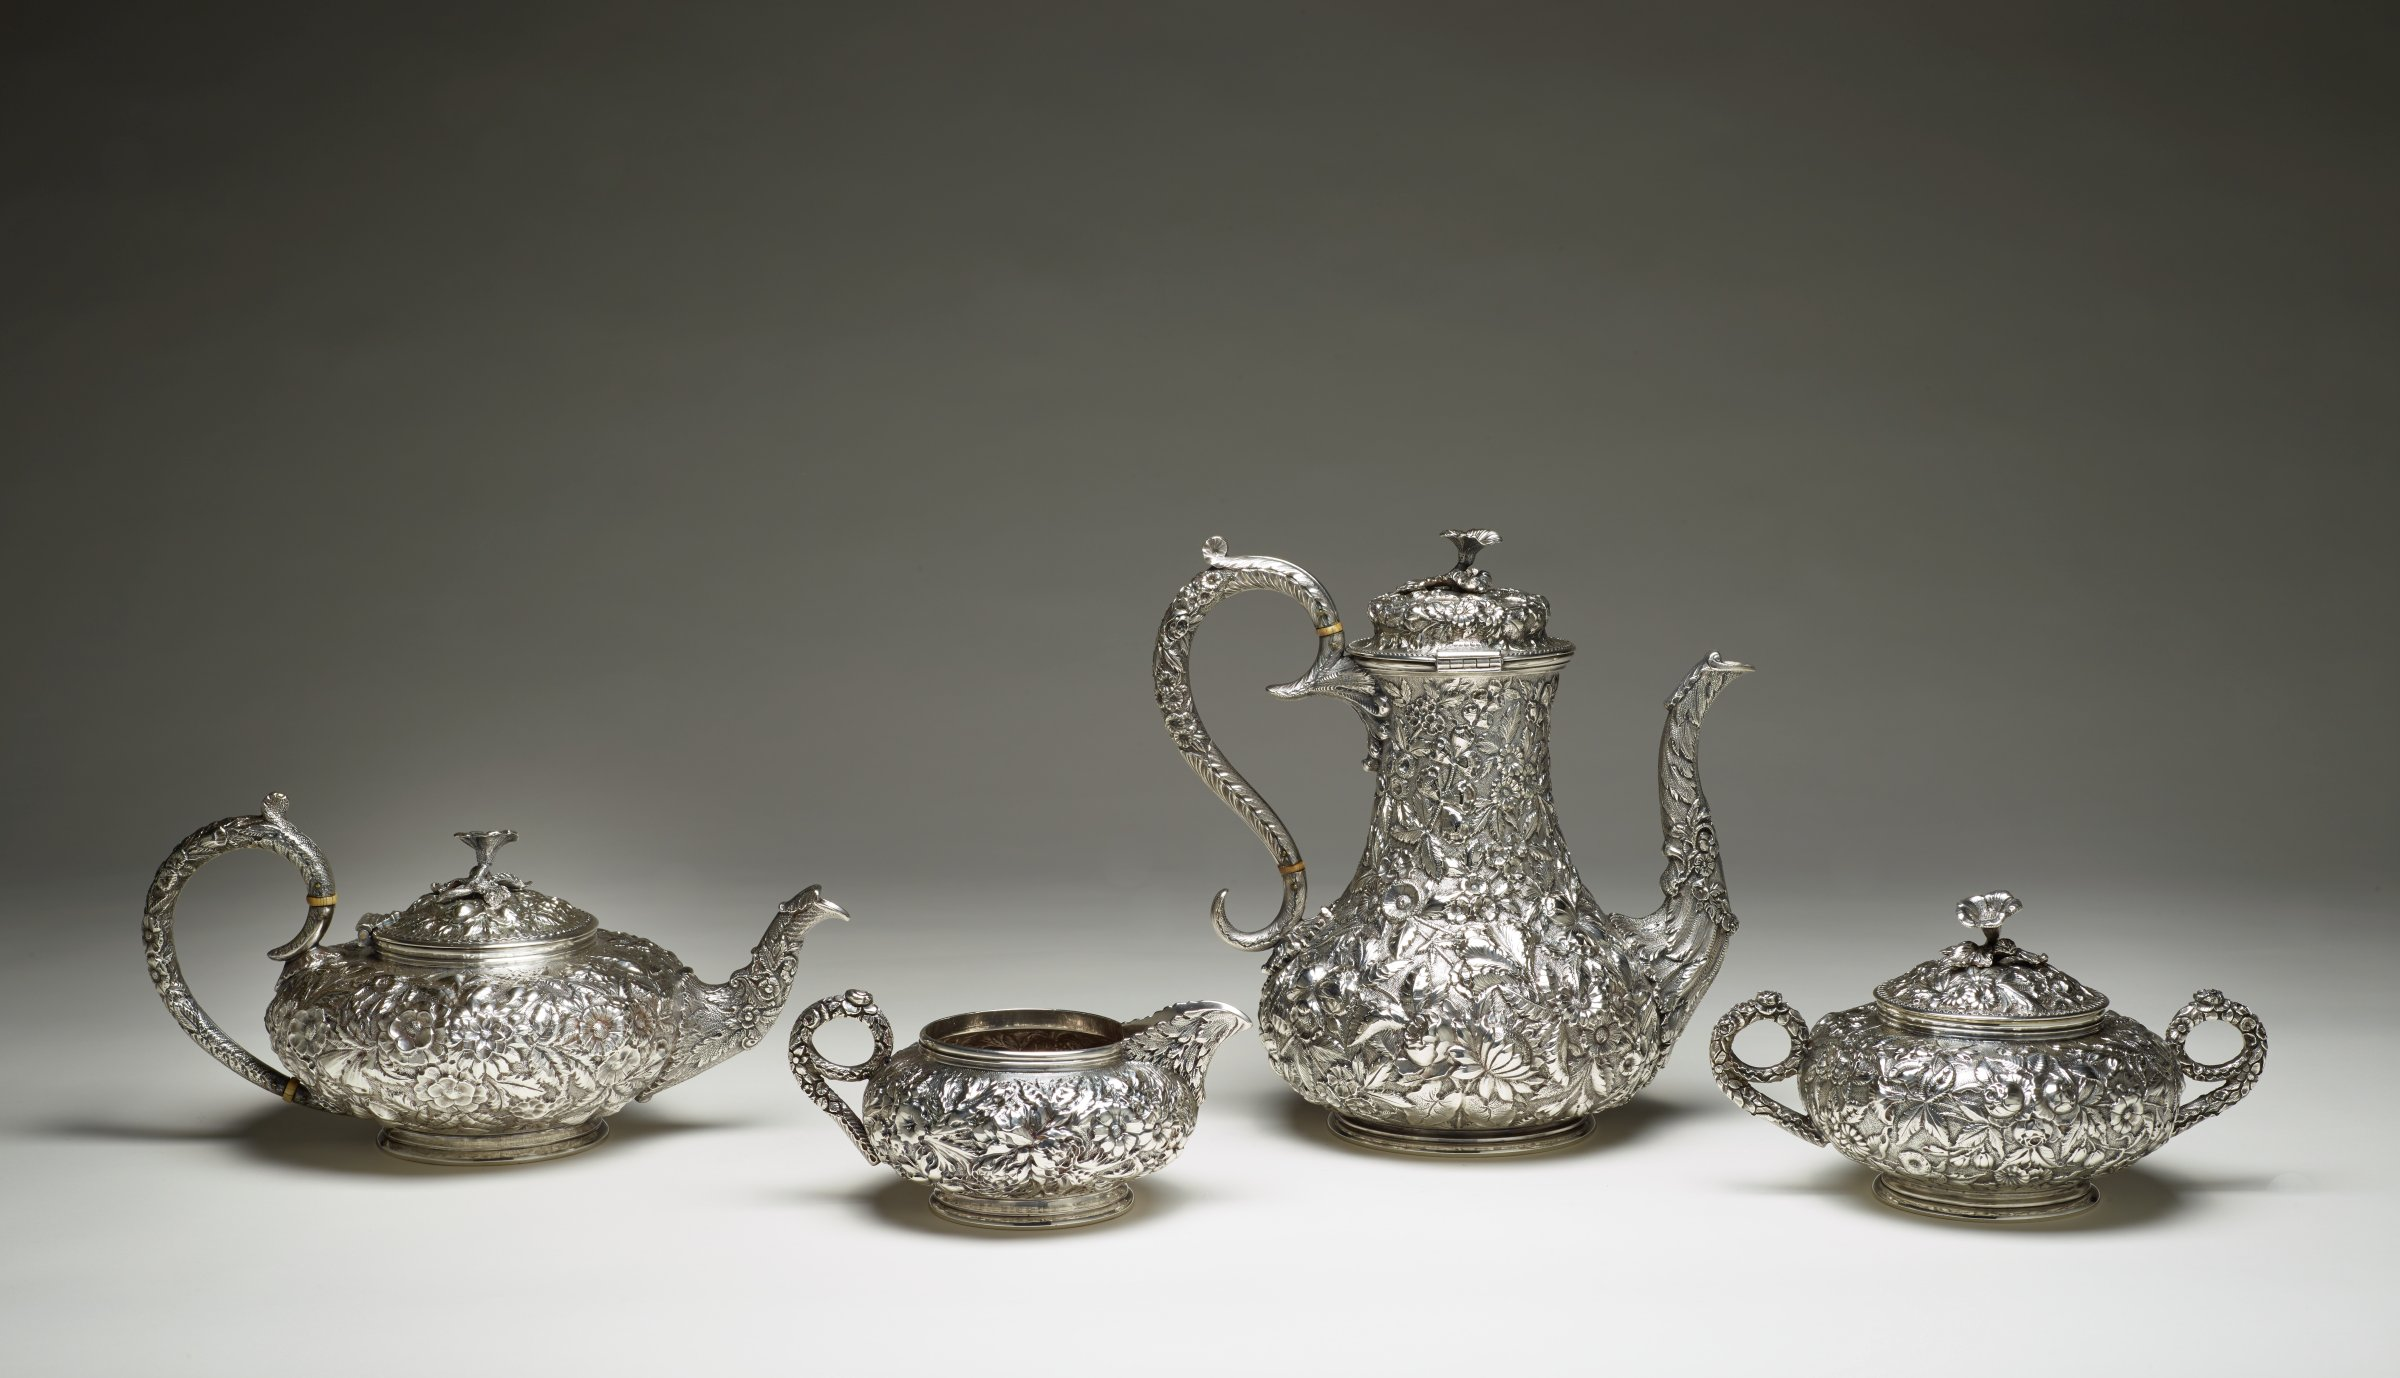 """Coffee and tea service consisting of (.1) coffee pot, (.2) teapot, (.3) creamer, and (.4a-b) covered sugar, each completely covered with a repoussé pattern of leaves and flowers in the Rococo-revival style, the lidded coffee pot of pear shape with curved spout, S-scroll handle insulated with ivory, domed lid and flower finial, the lidded teapot globular with curved spout, C-scroll handle insulated with ivory, and flower finial, the creamer also globular with scrolled handle and beak-shaped spout, the covered sugar with two scrolled handles and flower finial, each piece on slender stepped foot and engraved on base with the initials """"GJH"""" for """"Gena Jones Holt"""""""